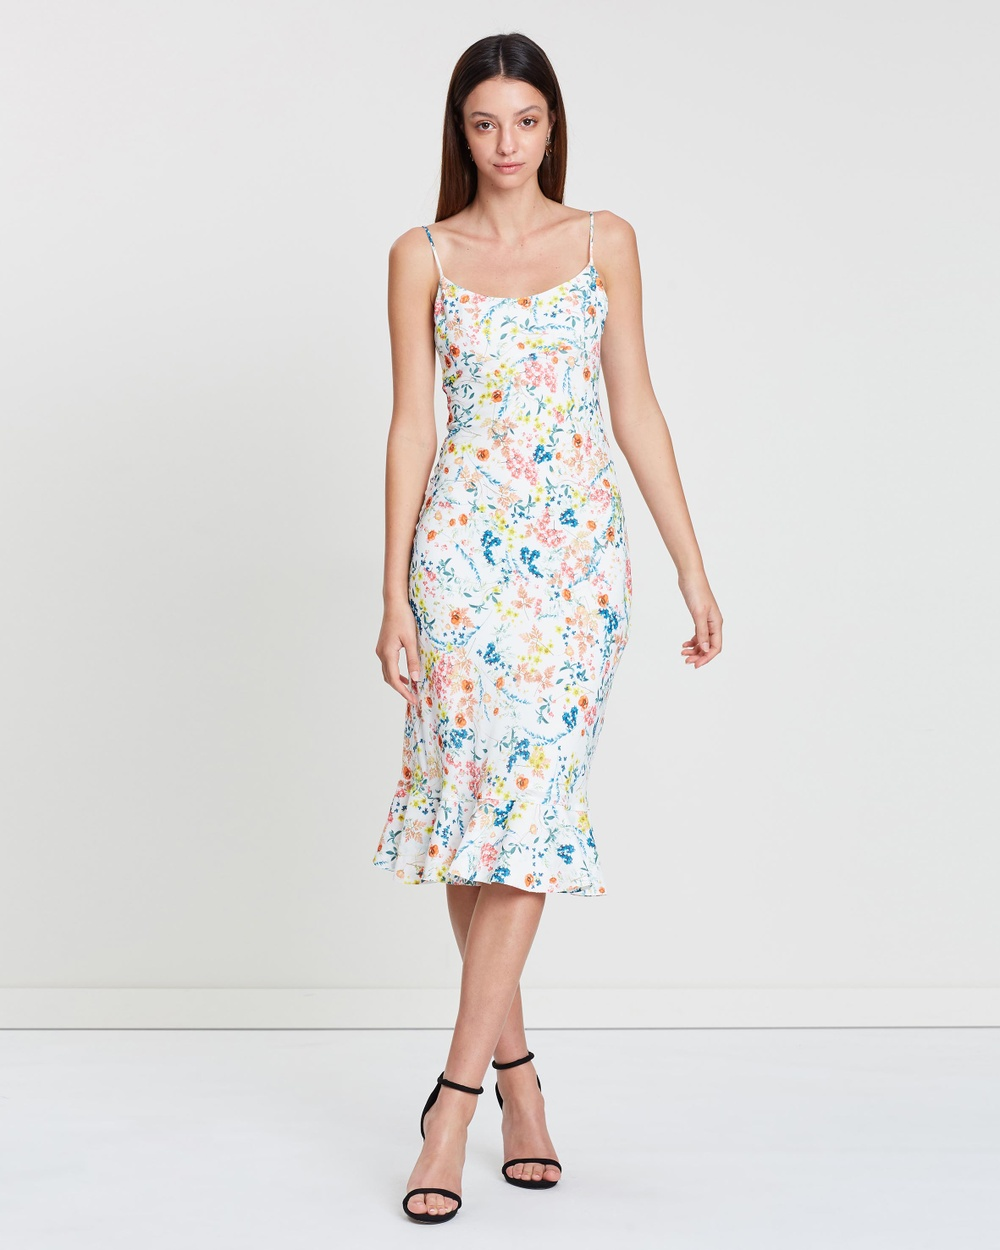 BY JOHNNY. White Floral Ditsy Frill Bias Midi Dress